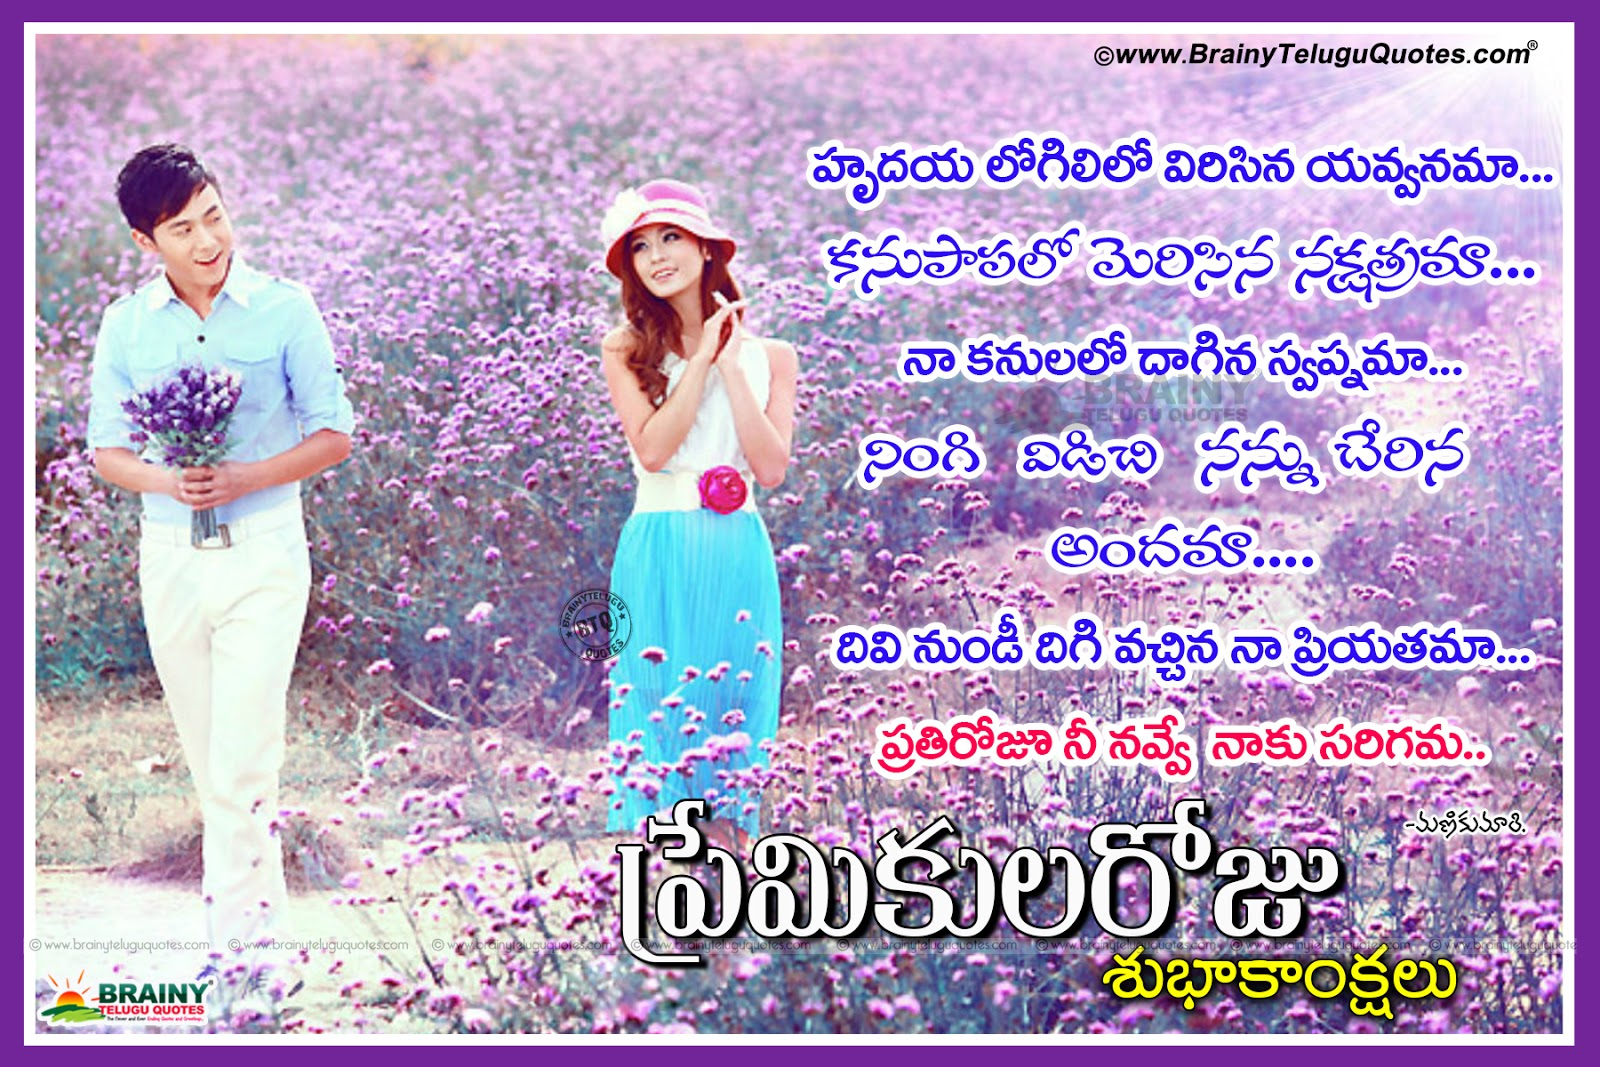 Valentines Day Telugu Wishes Greetings Messages Wallpapers Best